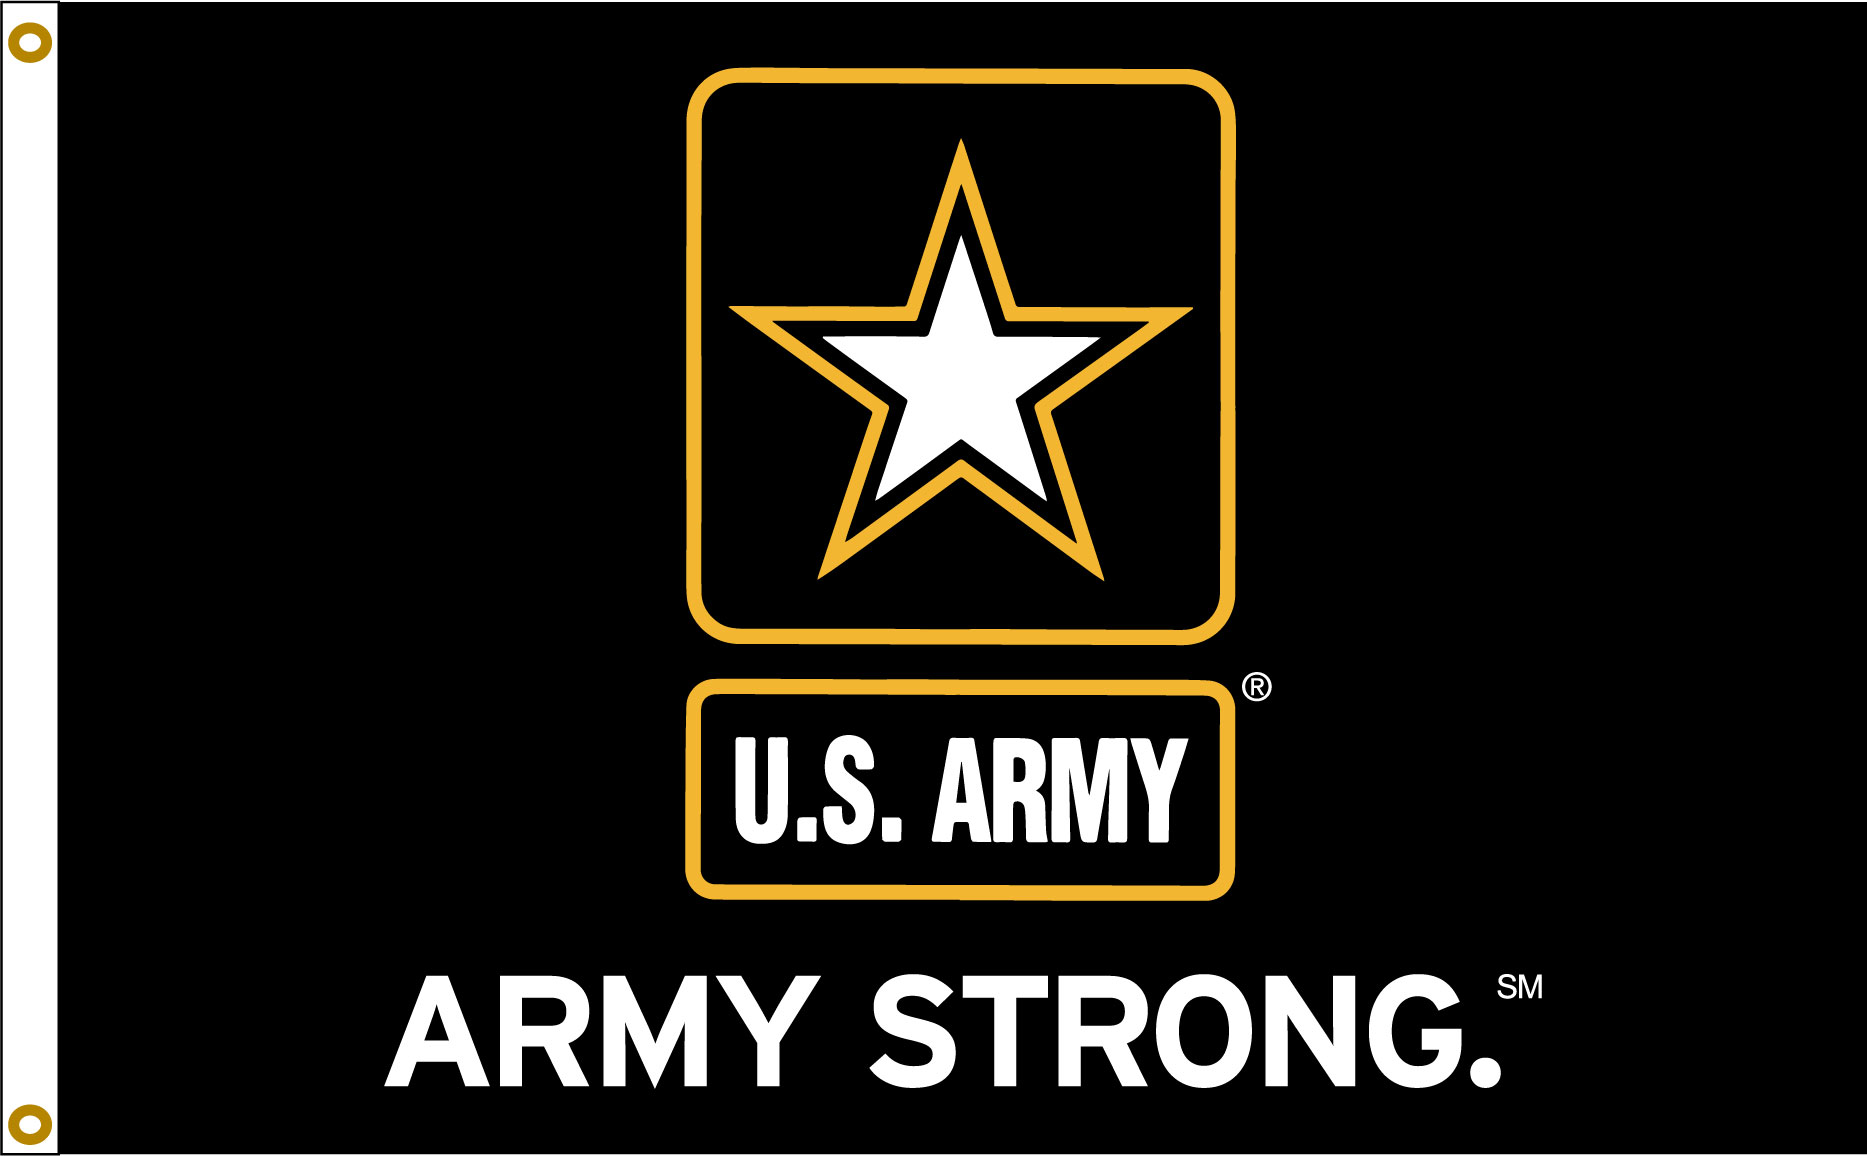 Army Strong 3_5 flag